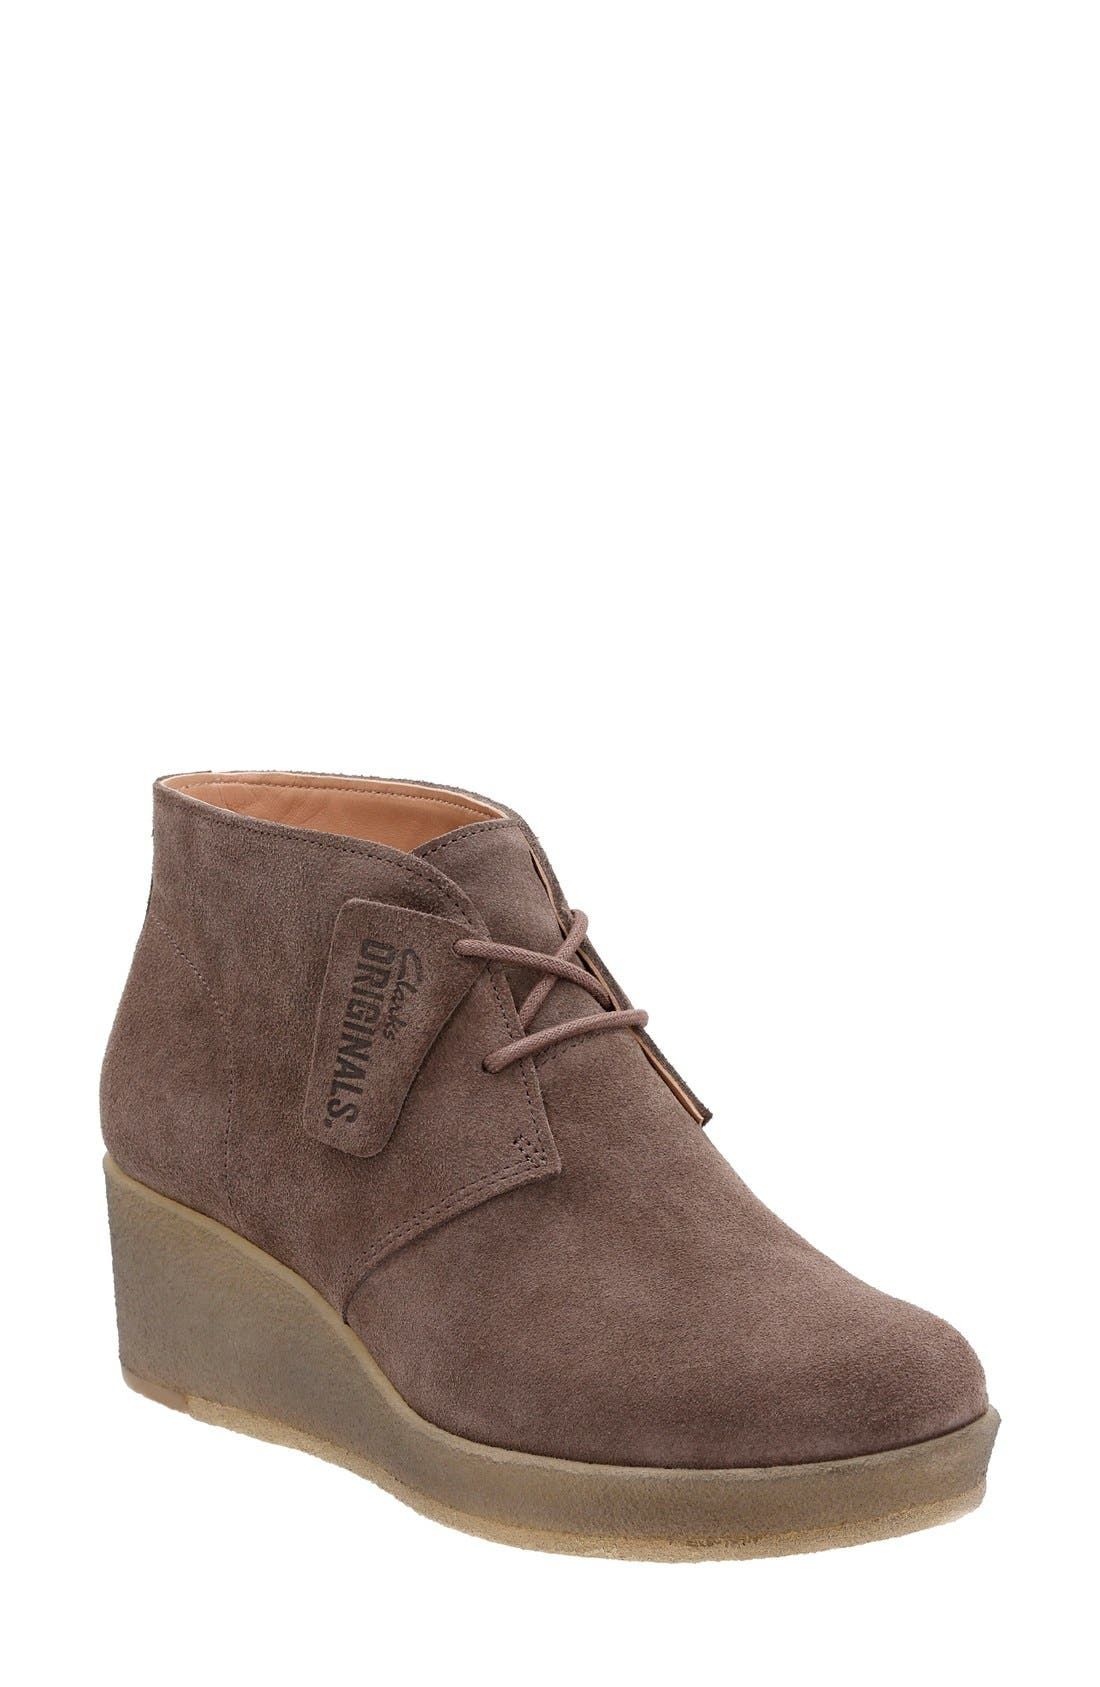 Originals 'Athie Terra' Wedge Boot,                             Main thumbnail 3, color,